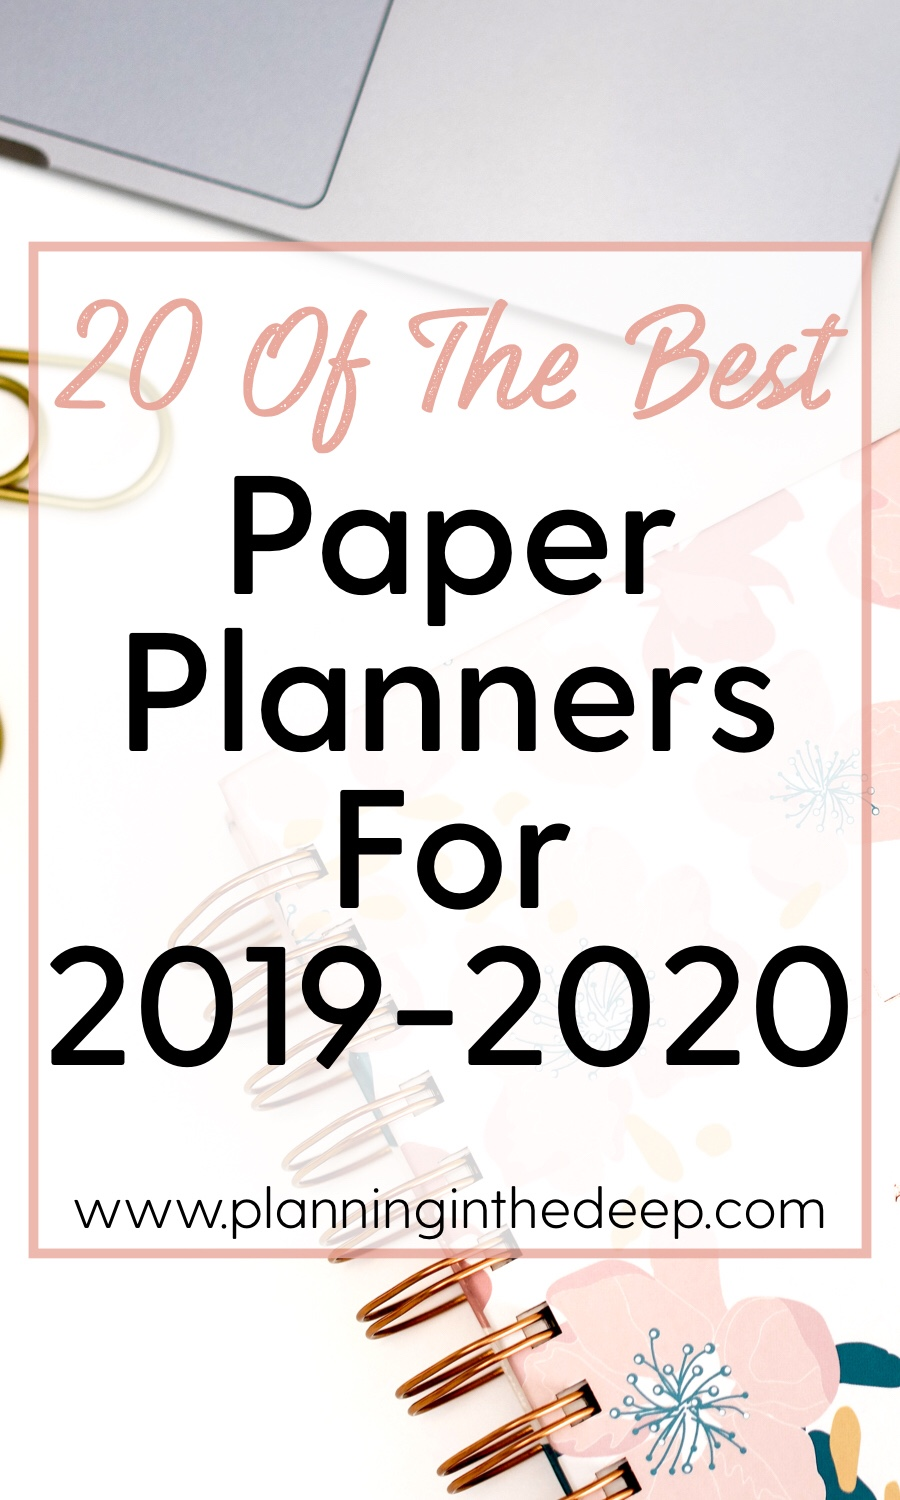 20 Of The Best Paper Planners For 2019-2020